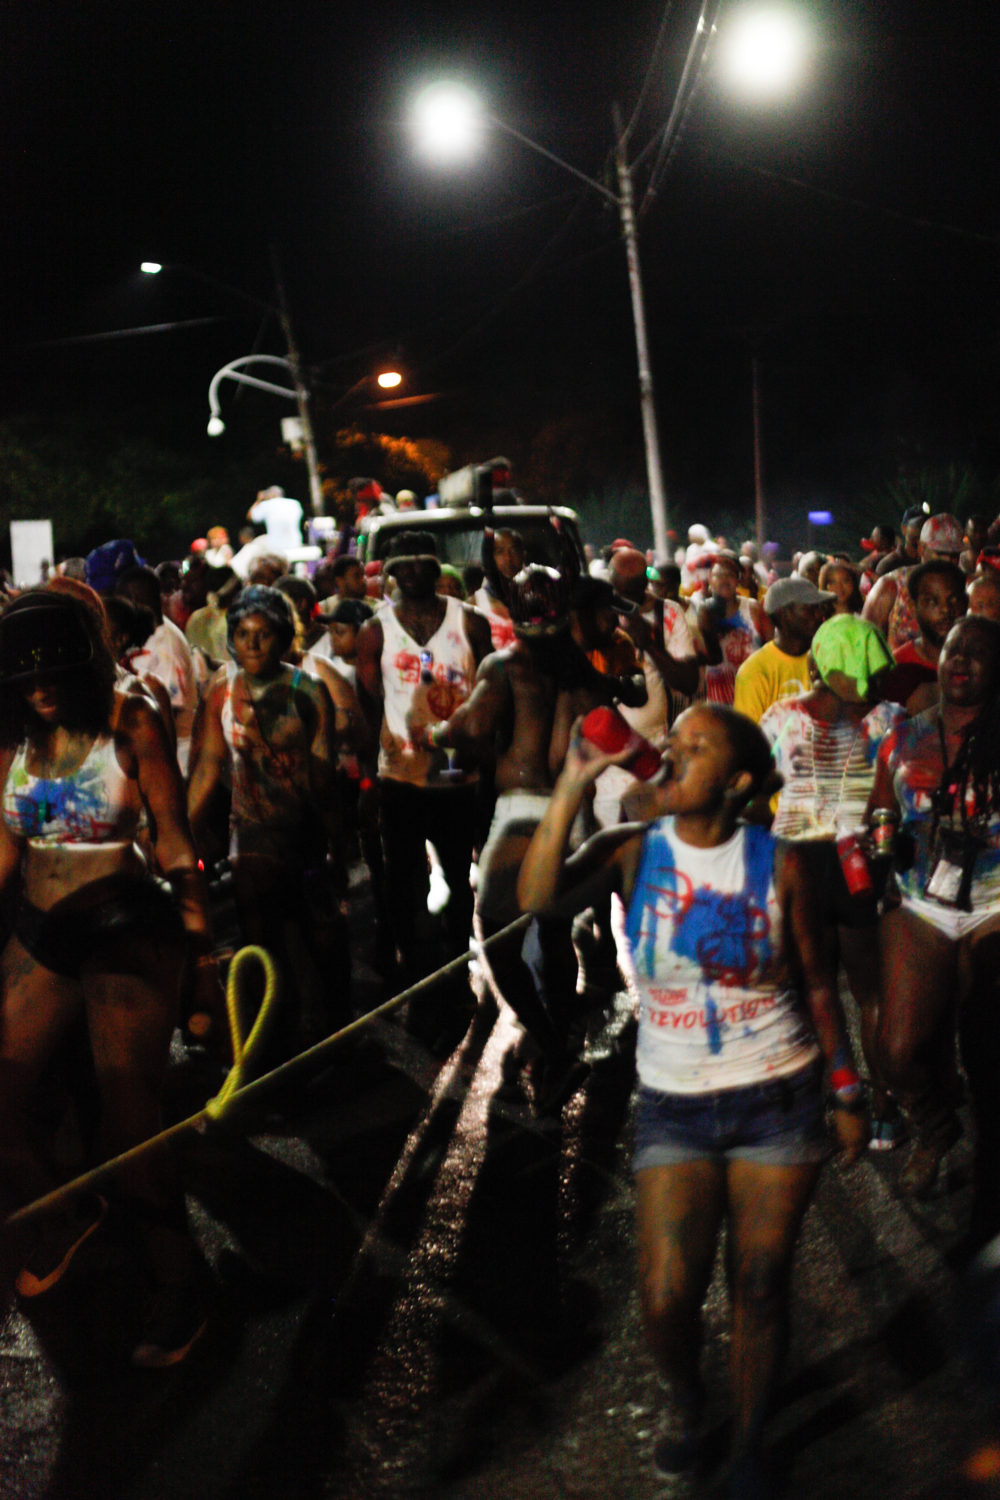 J'Ouvert begins in the darkness